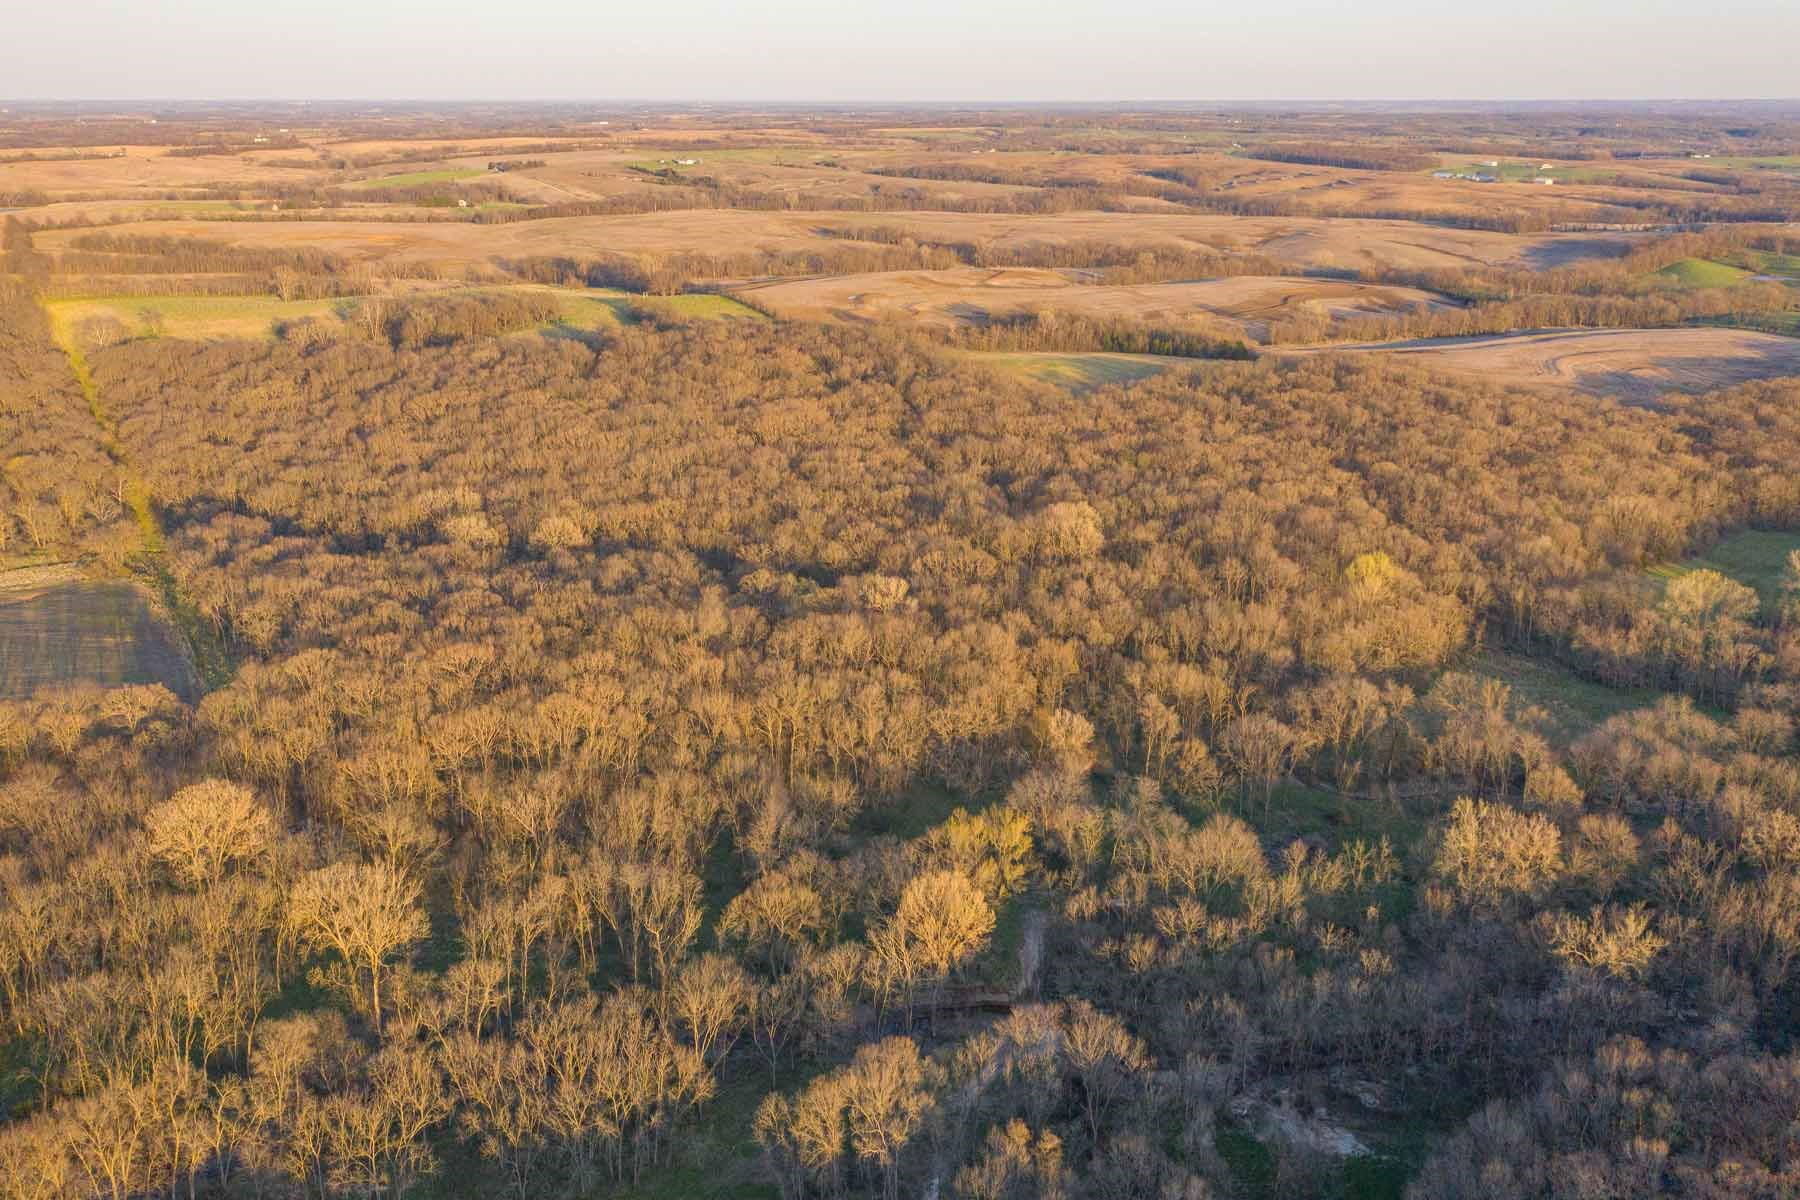 For Sale 243 Acre m/l Hunting Farm in Gentry County